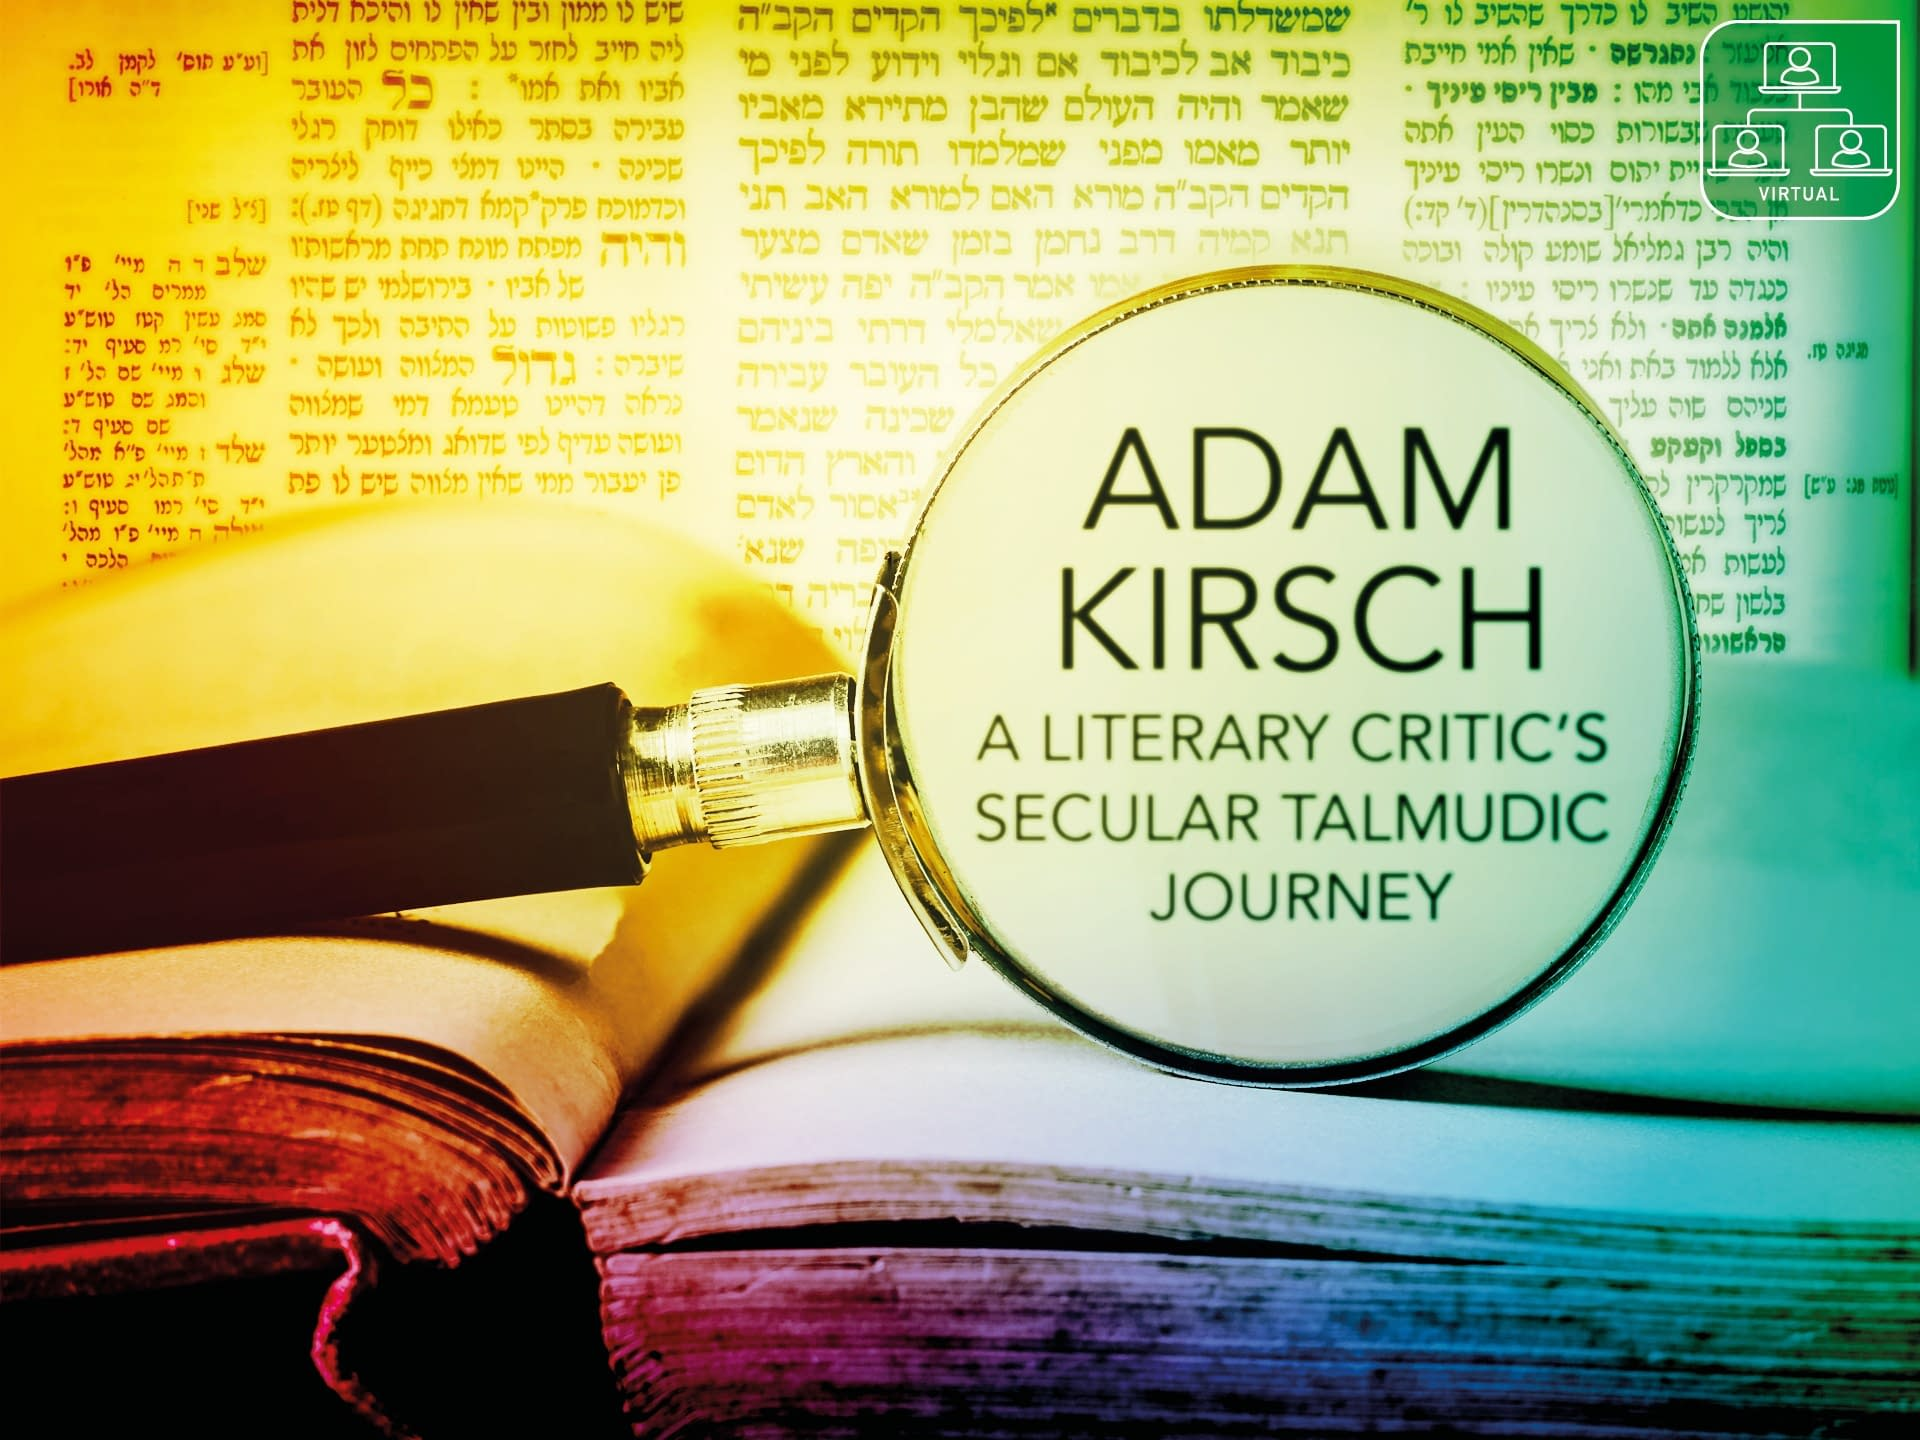 A Secular Talmudic Journey with Literary Critic Adam Kirsch 3 - - author